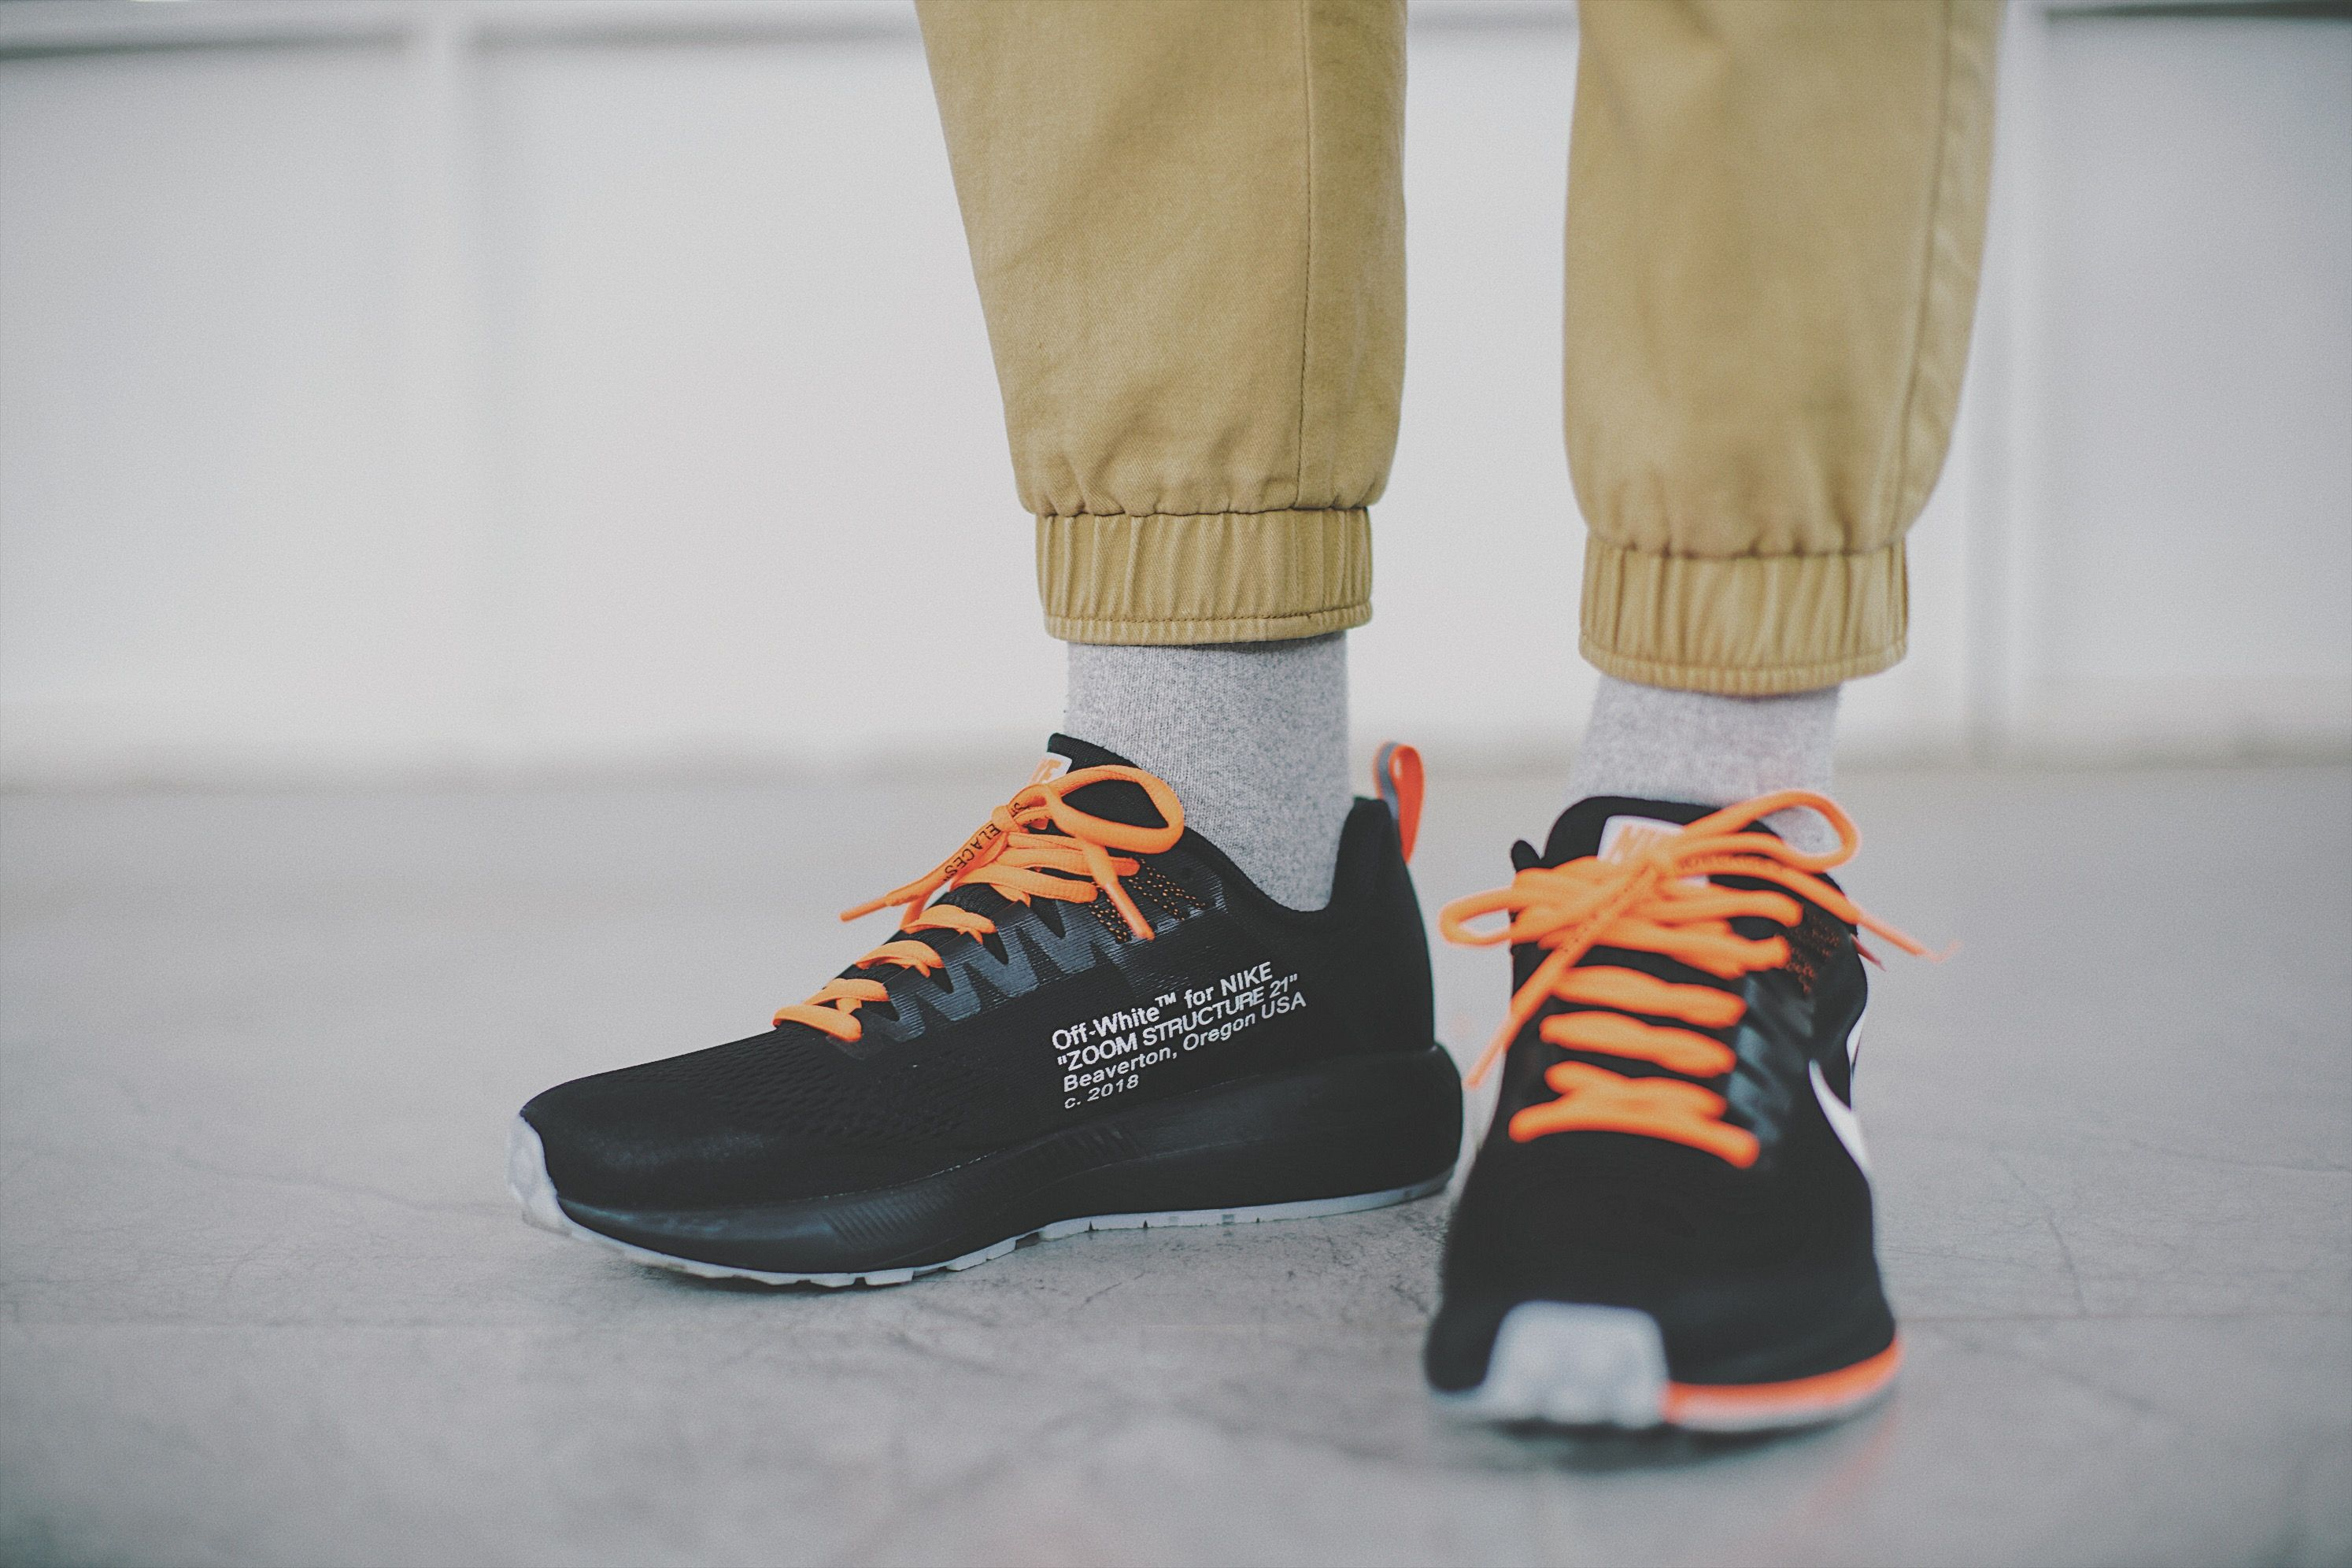 OFF-WHITE Virgil Abloh x Nike Air Zoom Structure 21Sneakers